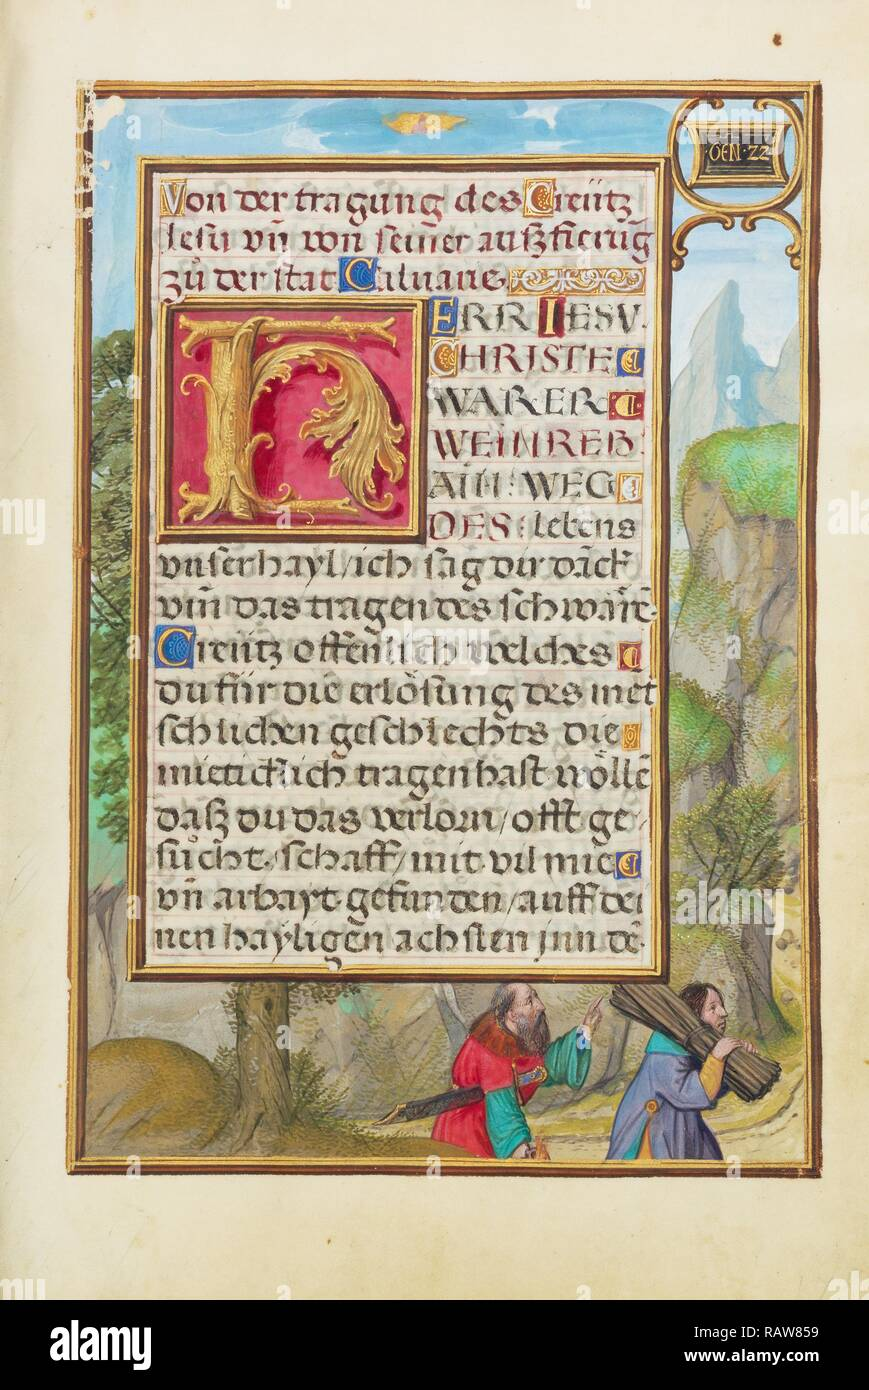 Border with Abraham and Isaac, Simon Bening, Flemish, about 1483 - 1561, Bruges, Belgium, Europe, about 1525 - 1530 reimagined - Stock Image